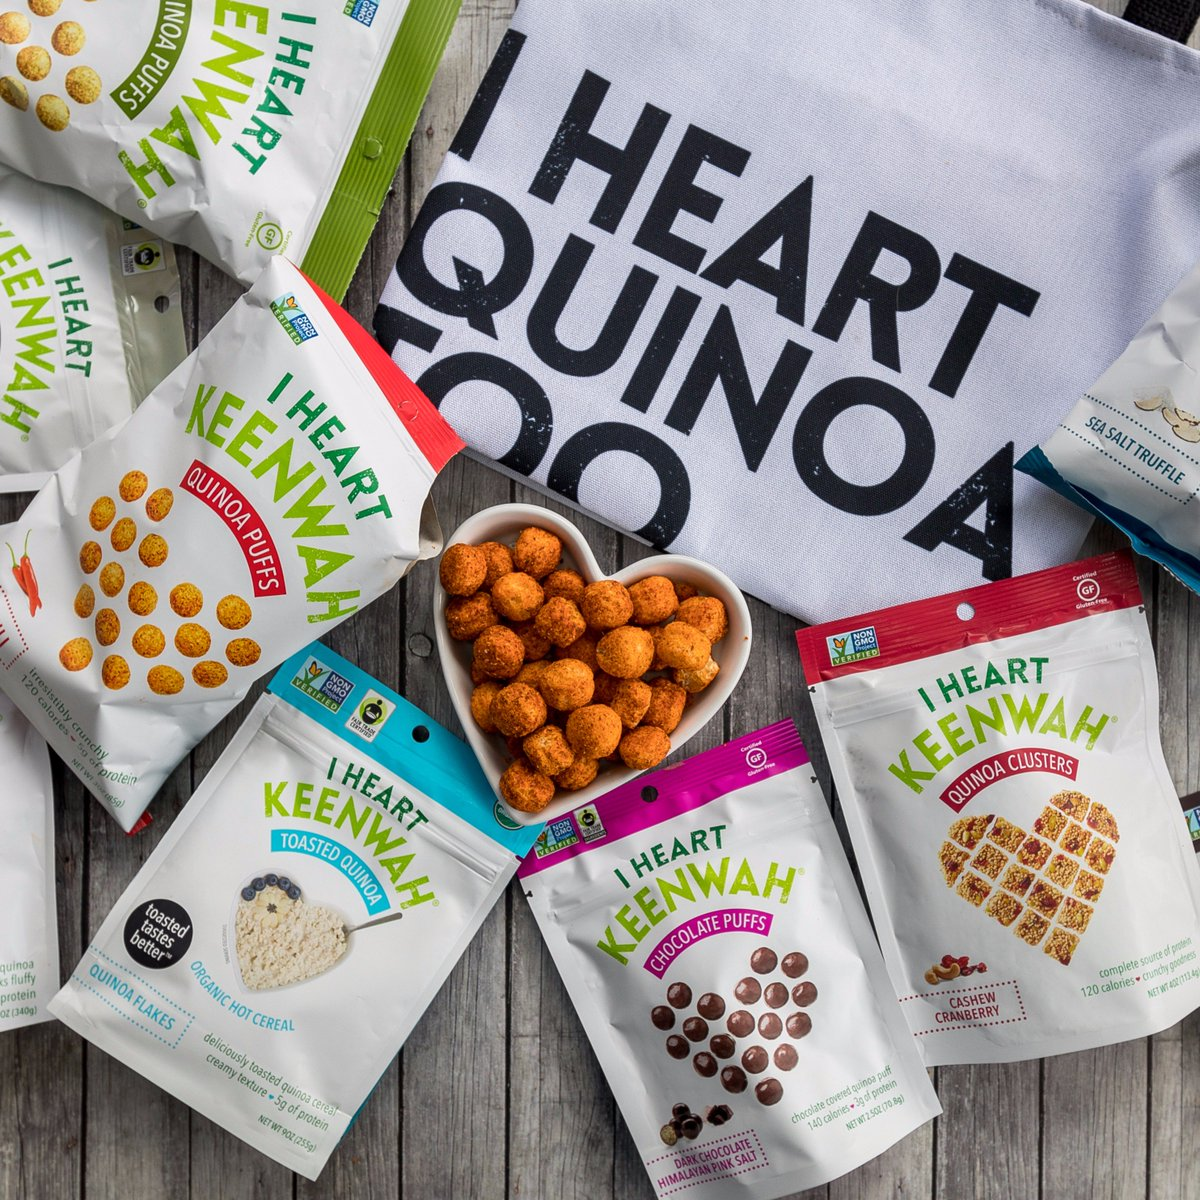 Enriched With The Benefits Of #Quinoa, @iheartkeenwah #snacks Is All You Need:  https://www. womenfitness.net/heart-keenwah- snacks/ &nbsp; …  #HealthyFood #HealthyDiet<br>http://pic.twitter.com/AAeN878Xh9